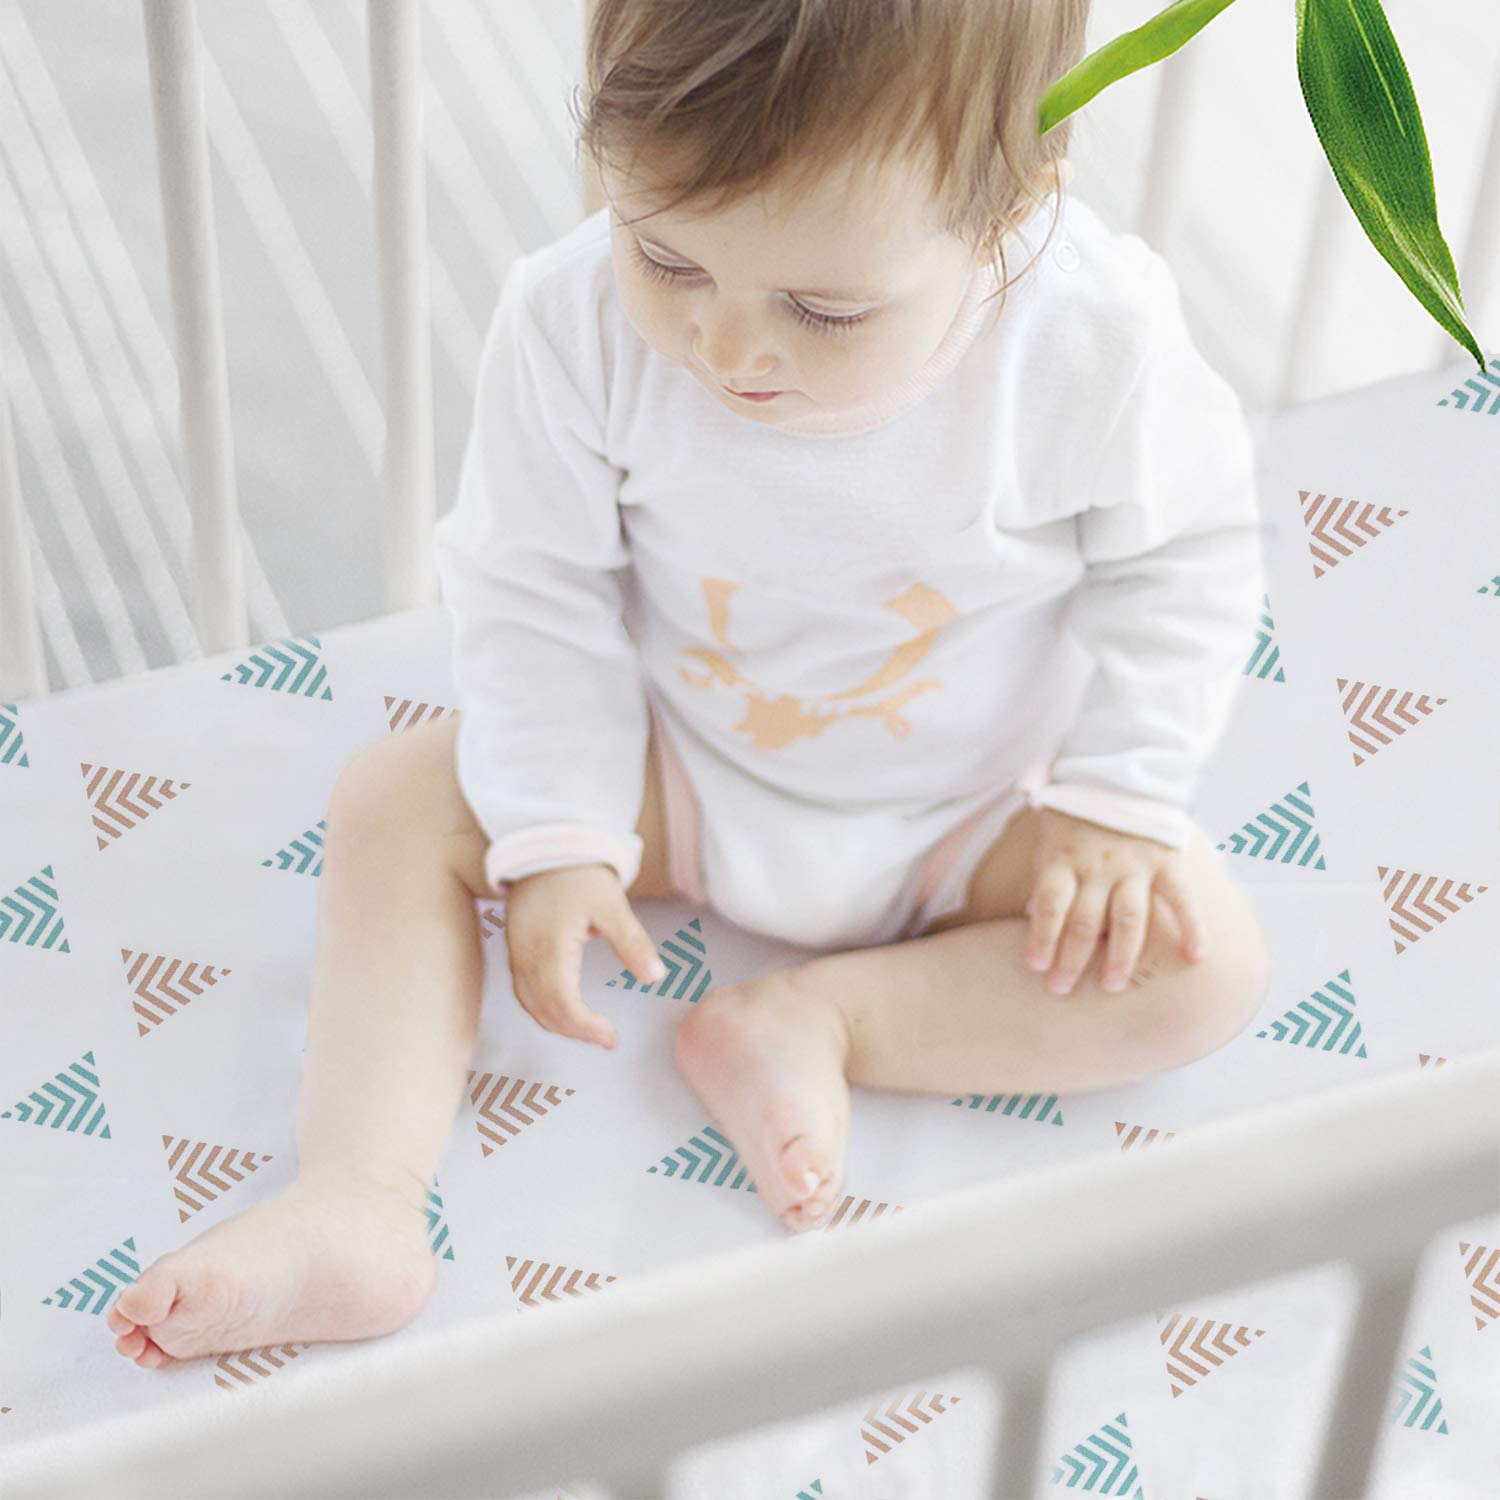 Breathable Cozy Baby Sheets Silky Soft Toddler Sheets Printed 2 Pack Mystery Reindeer 28 x 52in TILLYOU Microfiber Deer Crib Sheets Set for Boys /& Girls